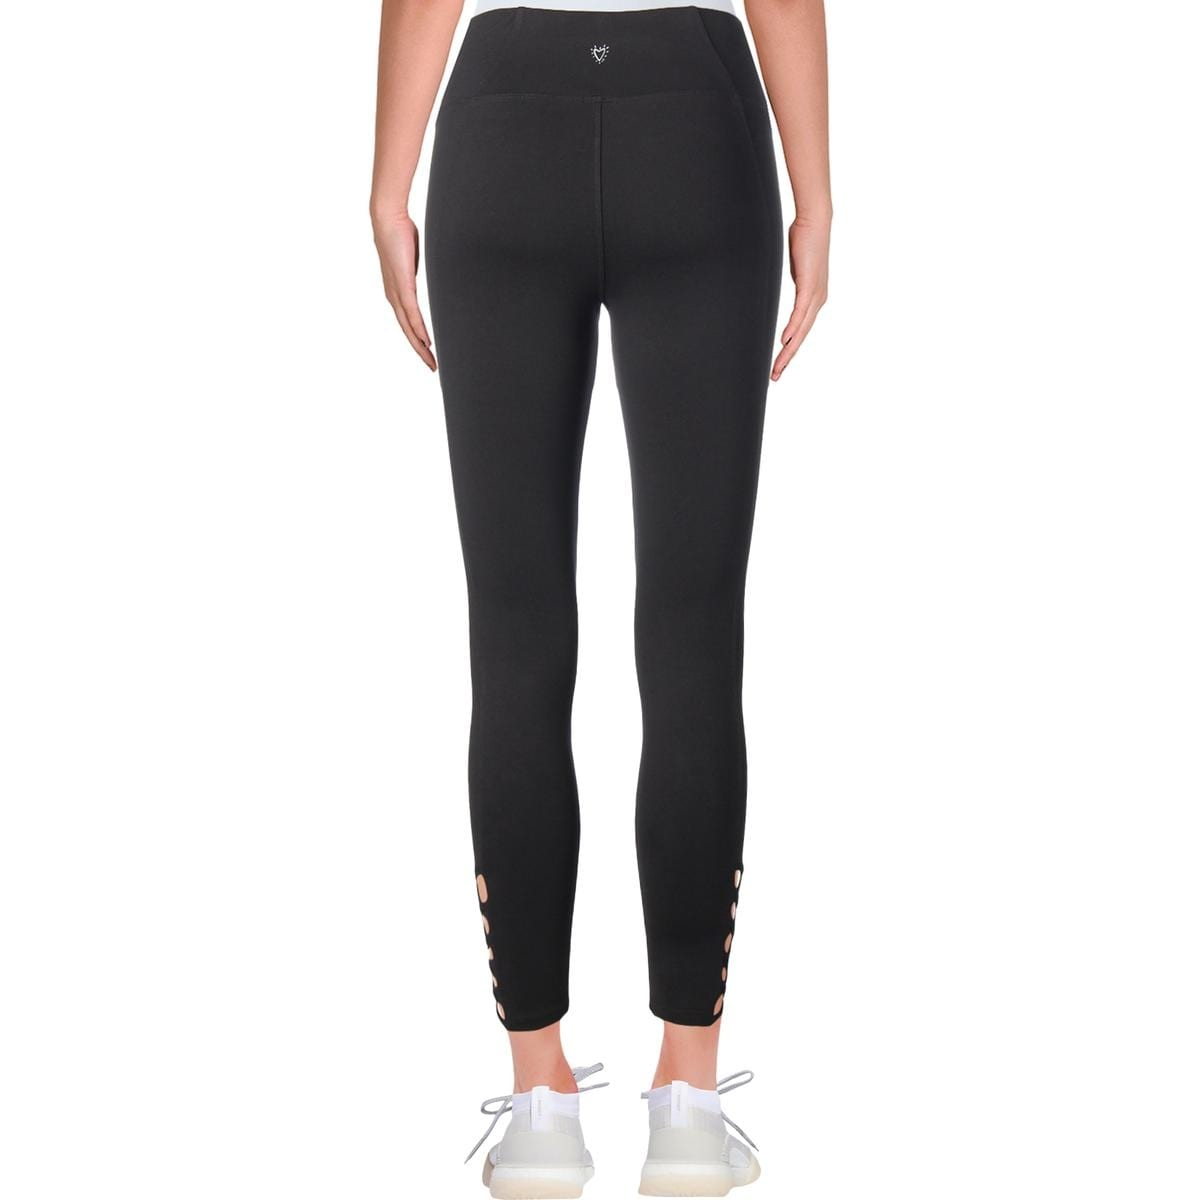 242f8289db13df Shop Betsey Johnson Performance Womens Athletic Leggings Yoga Fitness -  Free Shipping On Orders Over $45 - Overstock - 23512413